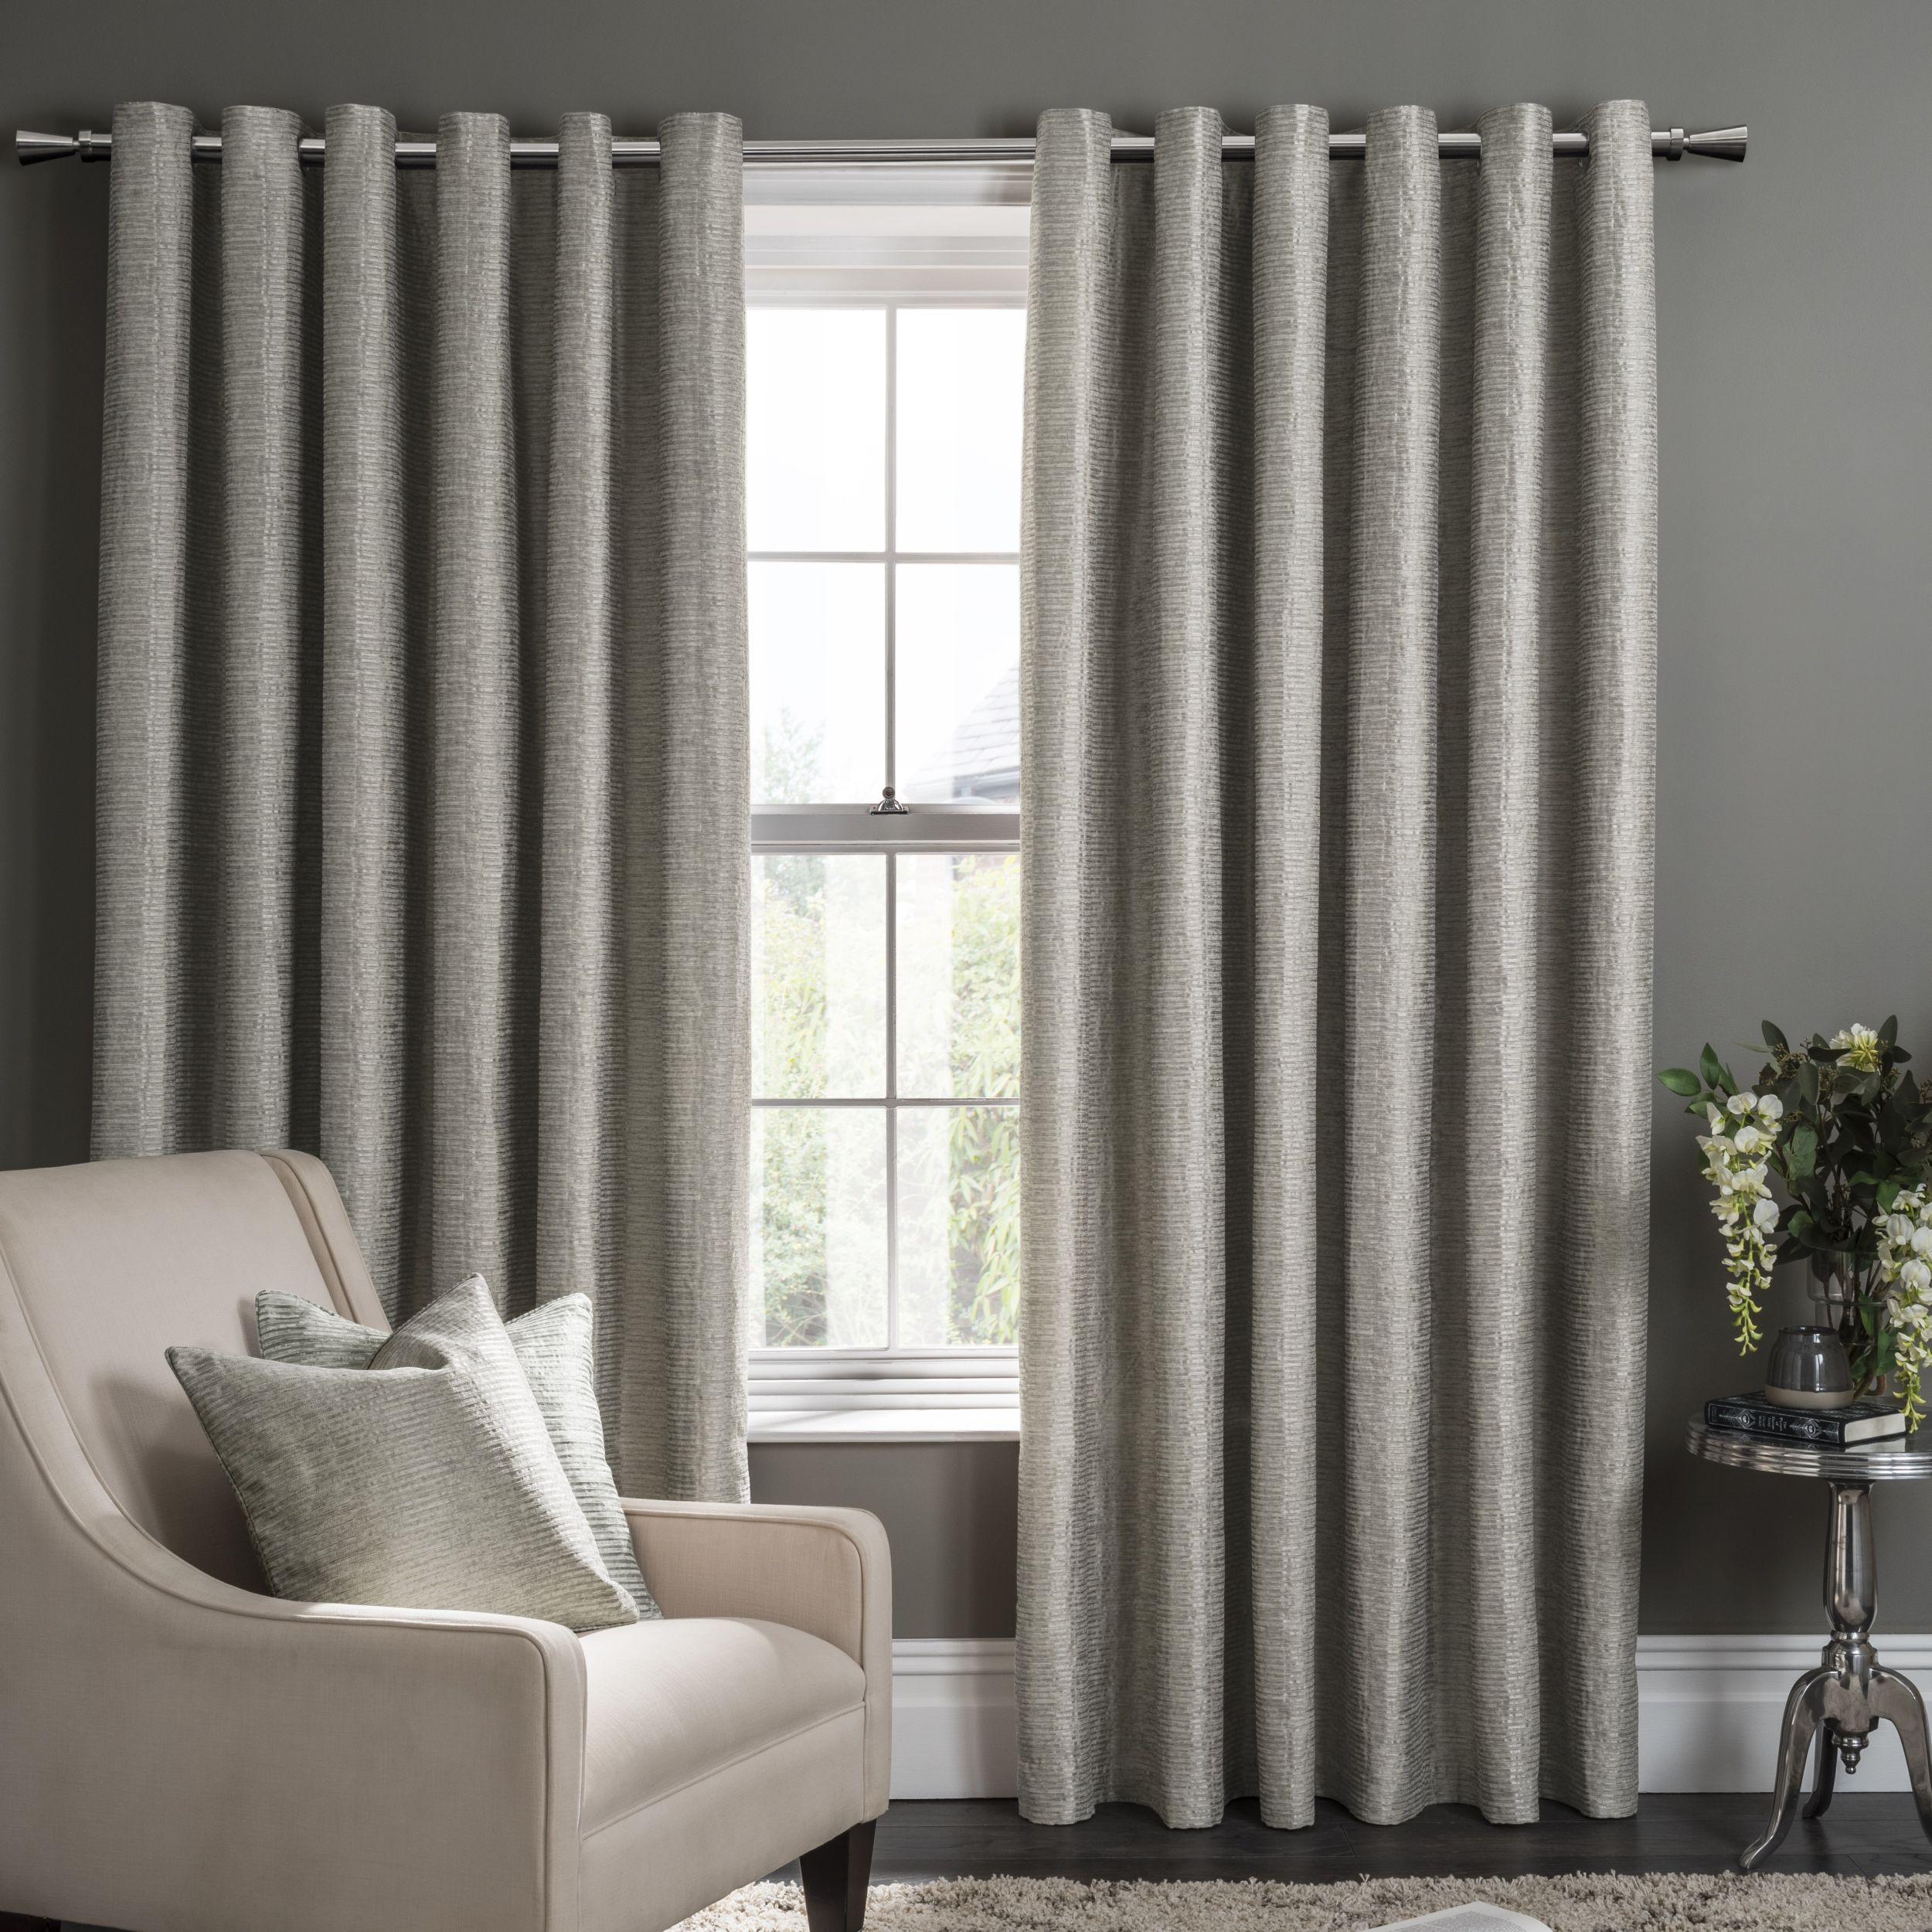 home pair approx amazon mcbride made co uk curtain fully seattle ring lined hamilton curtains top kitchen natural dp eyelet ready readymade